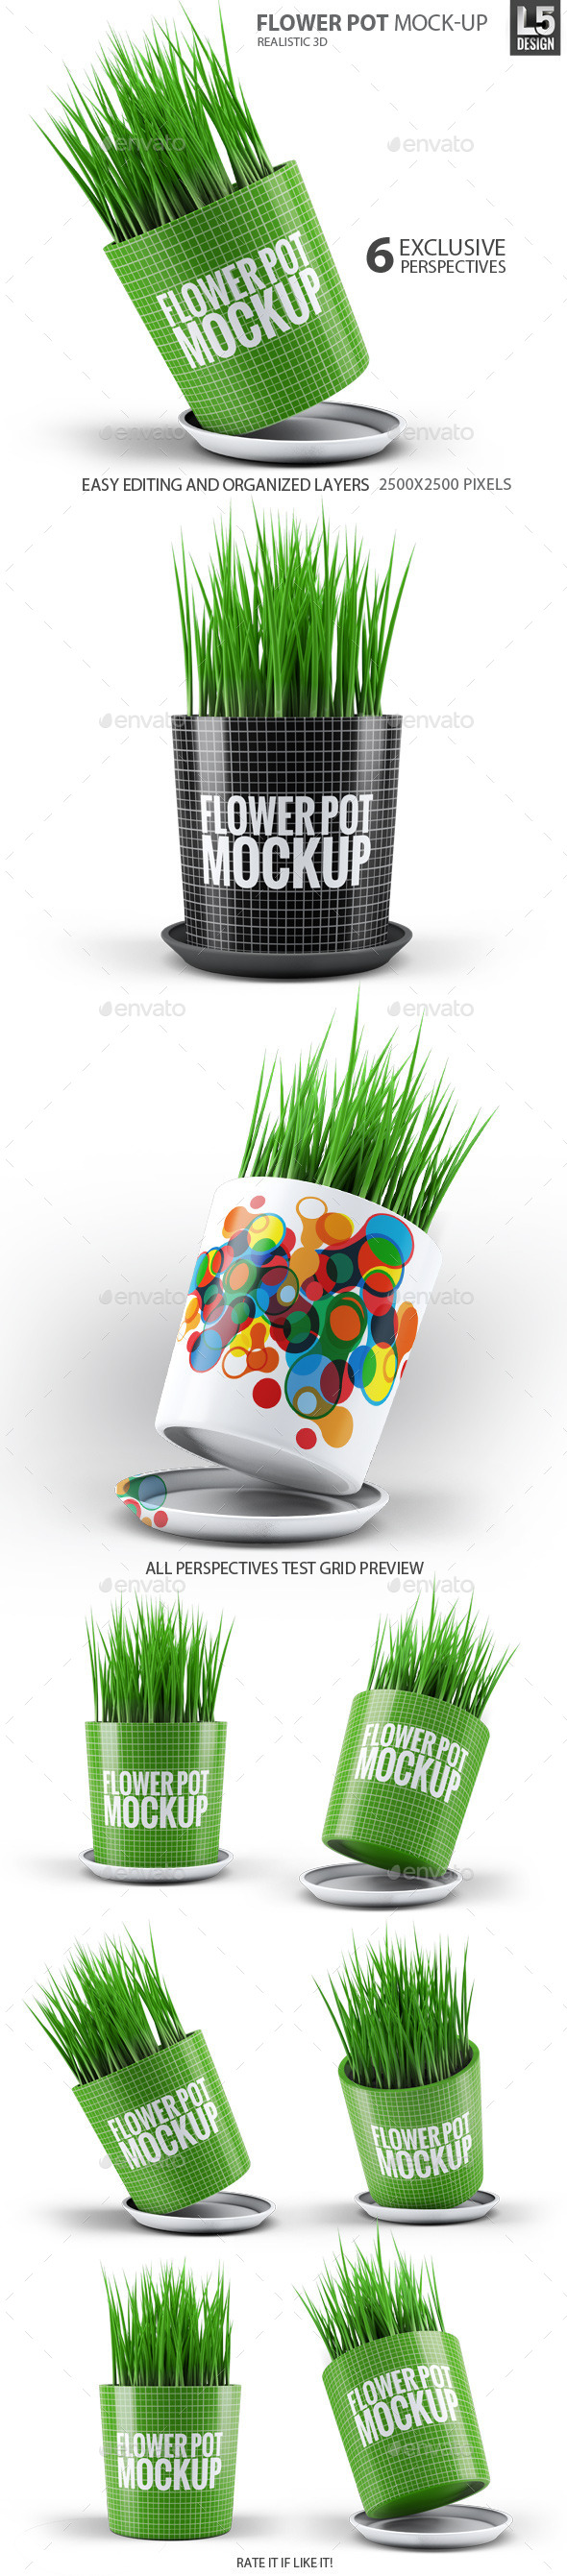 GraphicRiver Flower Pot Mock-Up 10270382